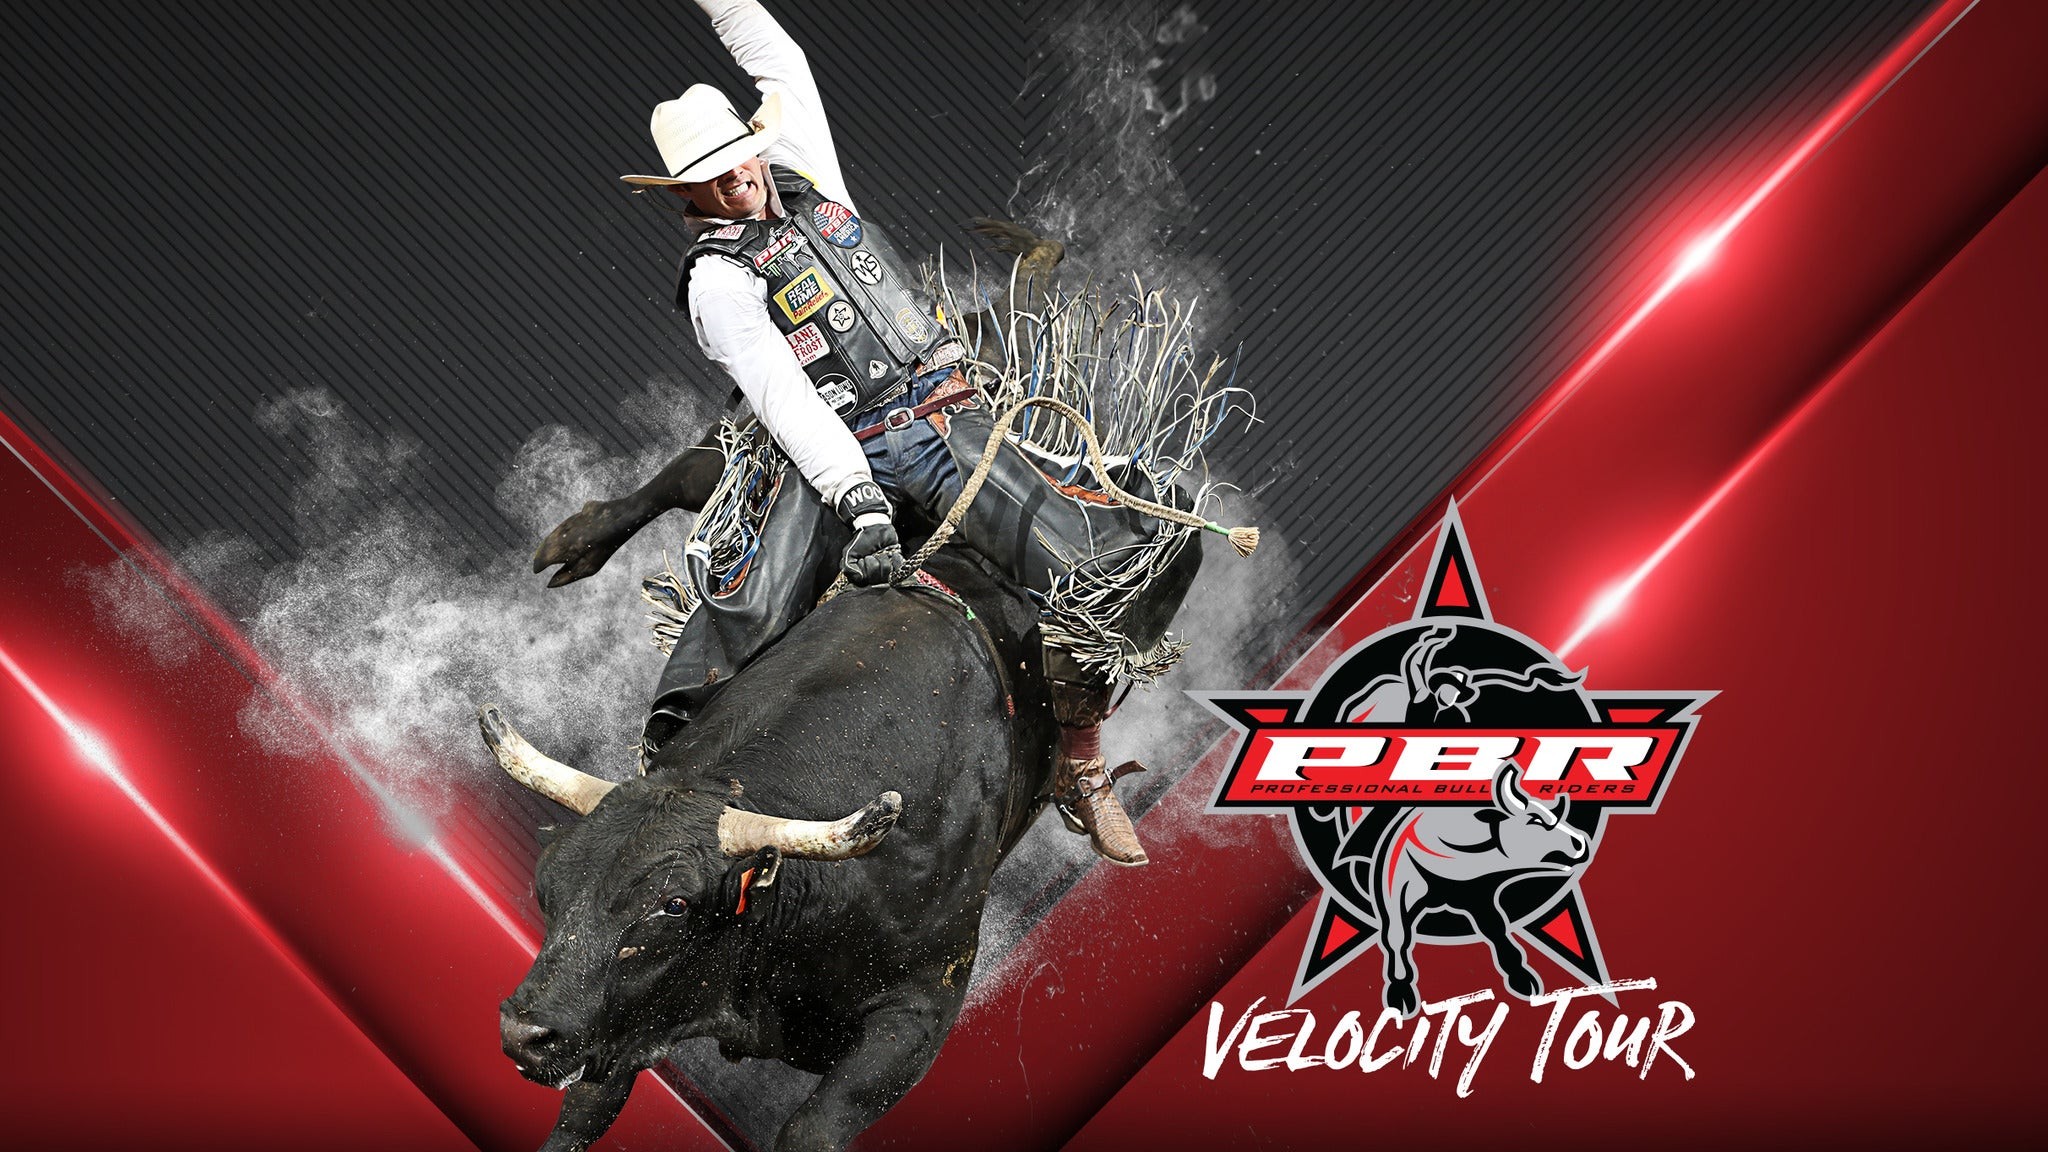 PBR: Velocity Tour at Bon Secours Wellness Arena